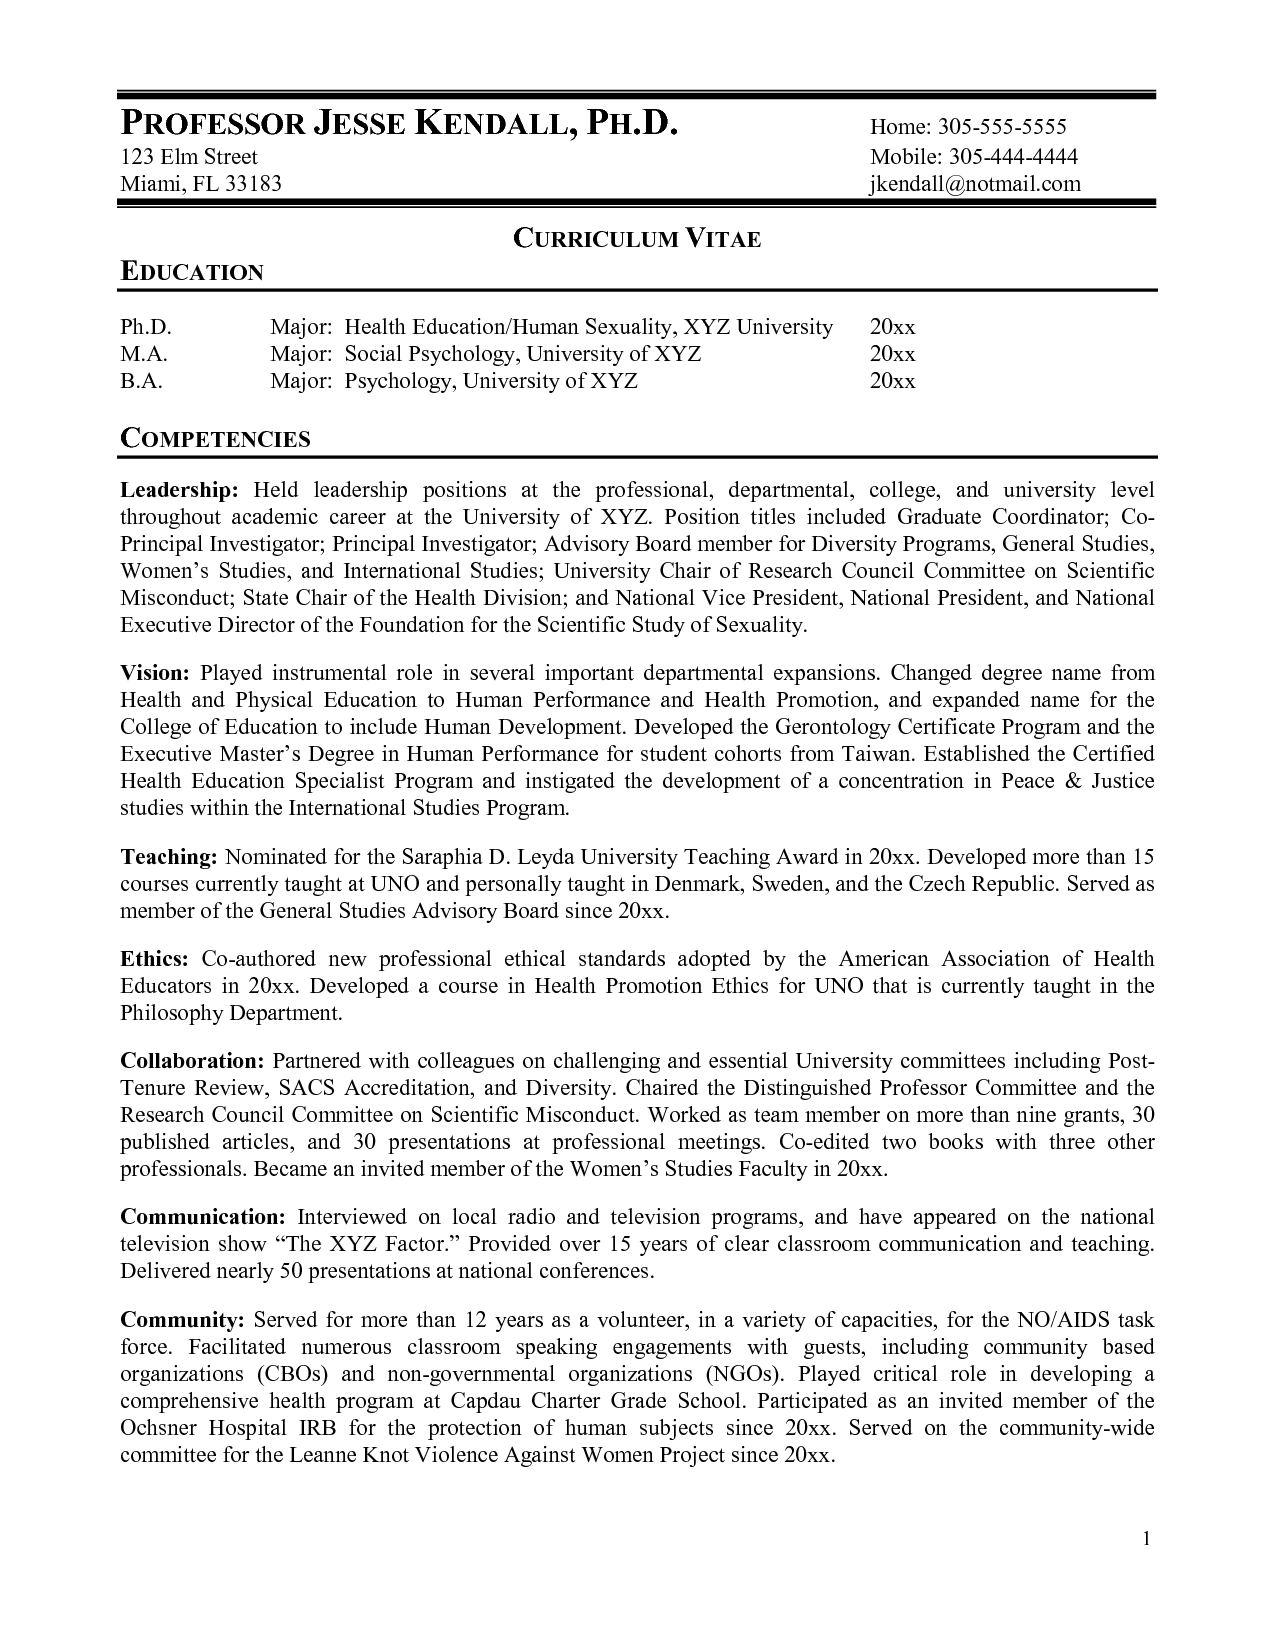 curriculum vitae format in research paper